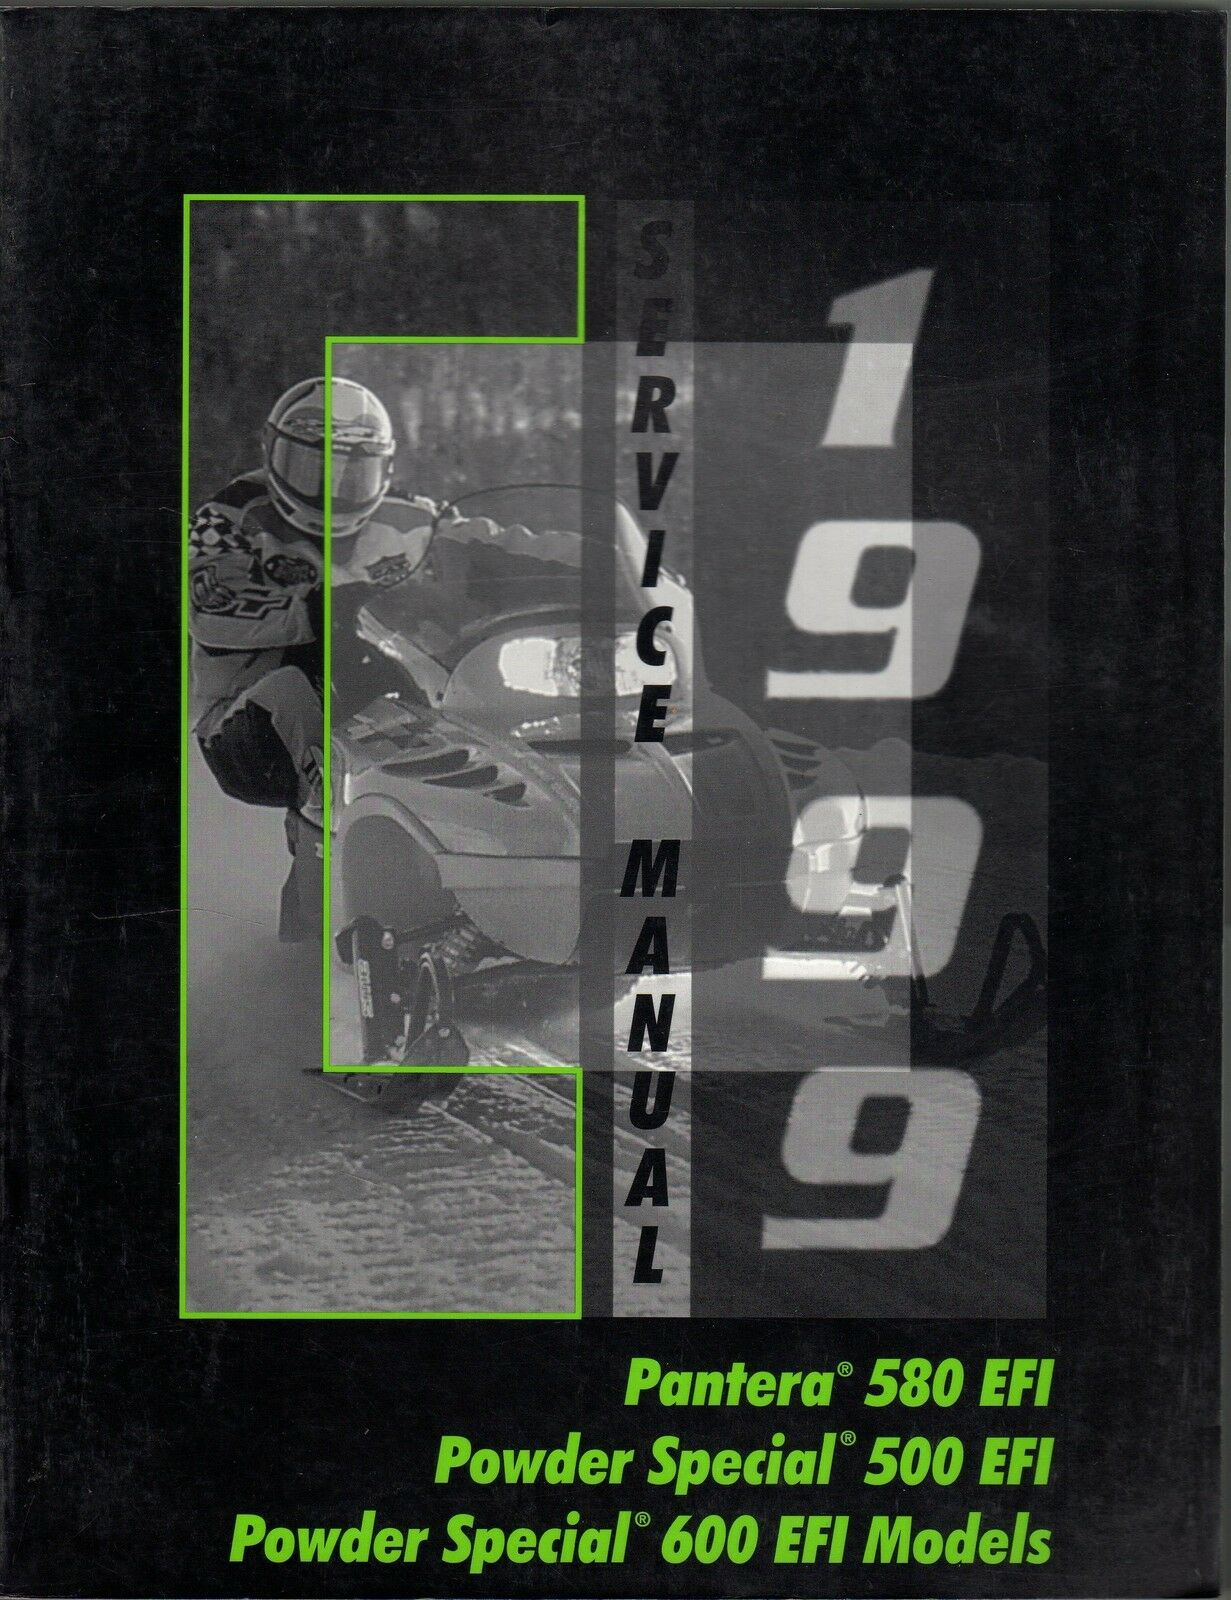 1999 ARCTIC CAT PANTERA, POWDER SPECIAL 500 EF P N 2255-941 SERVICE MANUAL (809)